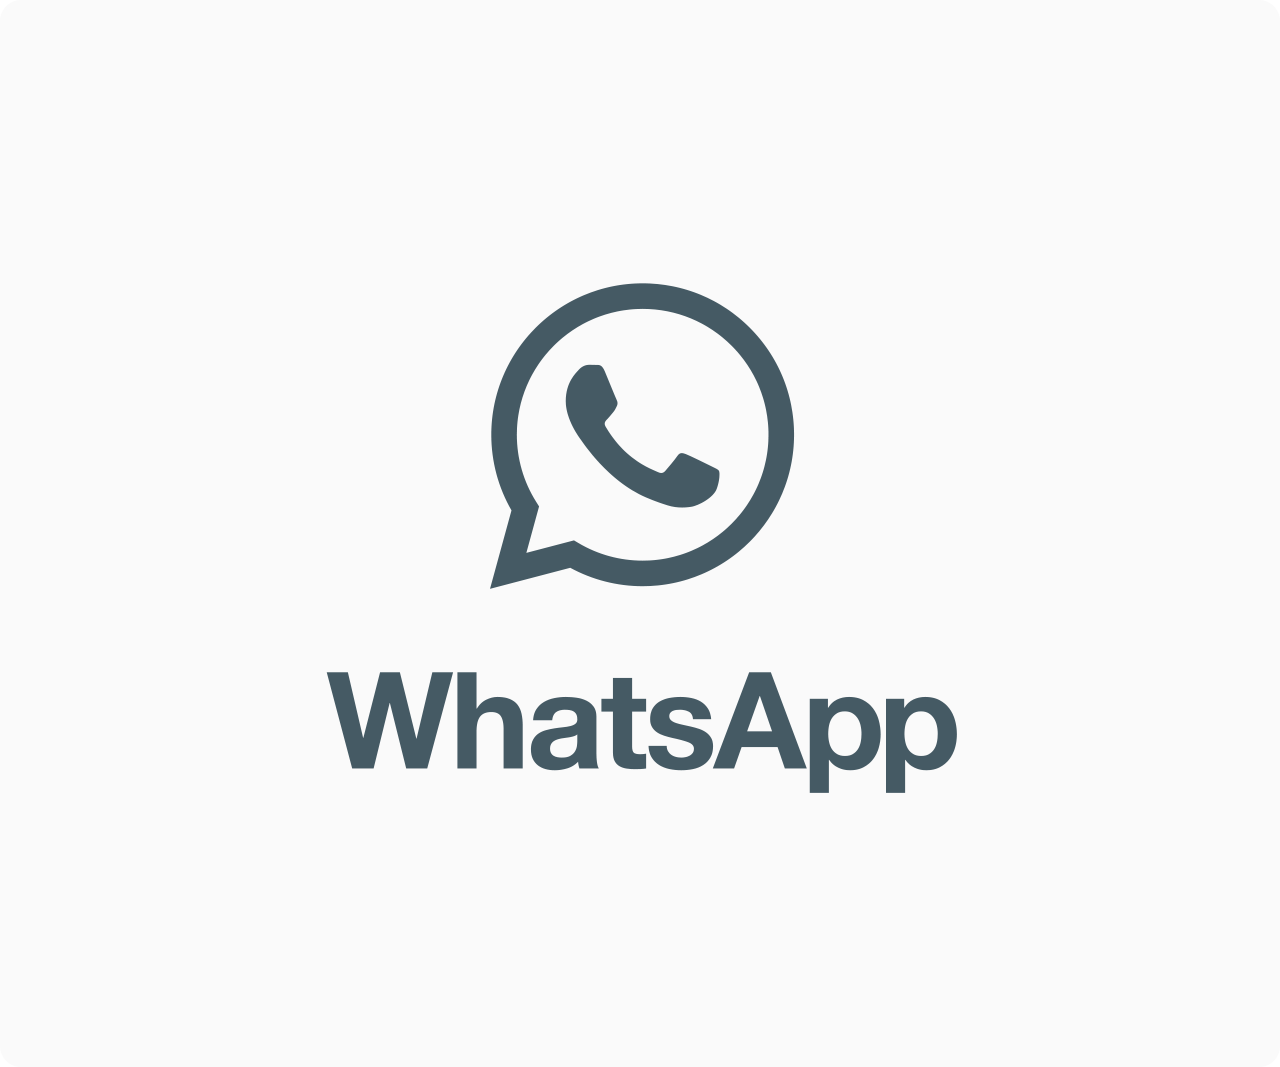 WhatsApp Marketing Strategies: An Actionable Guide to Read